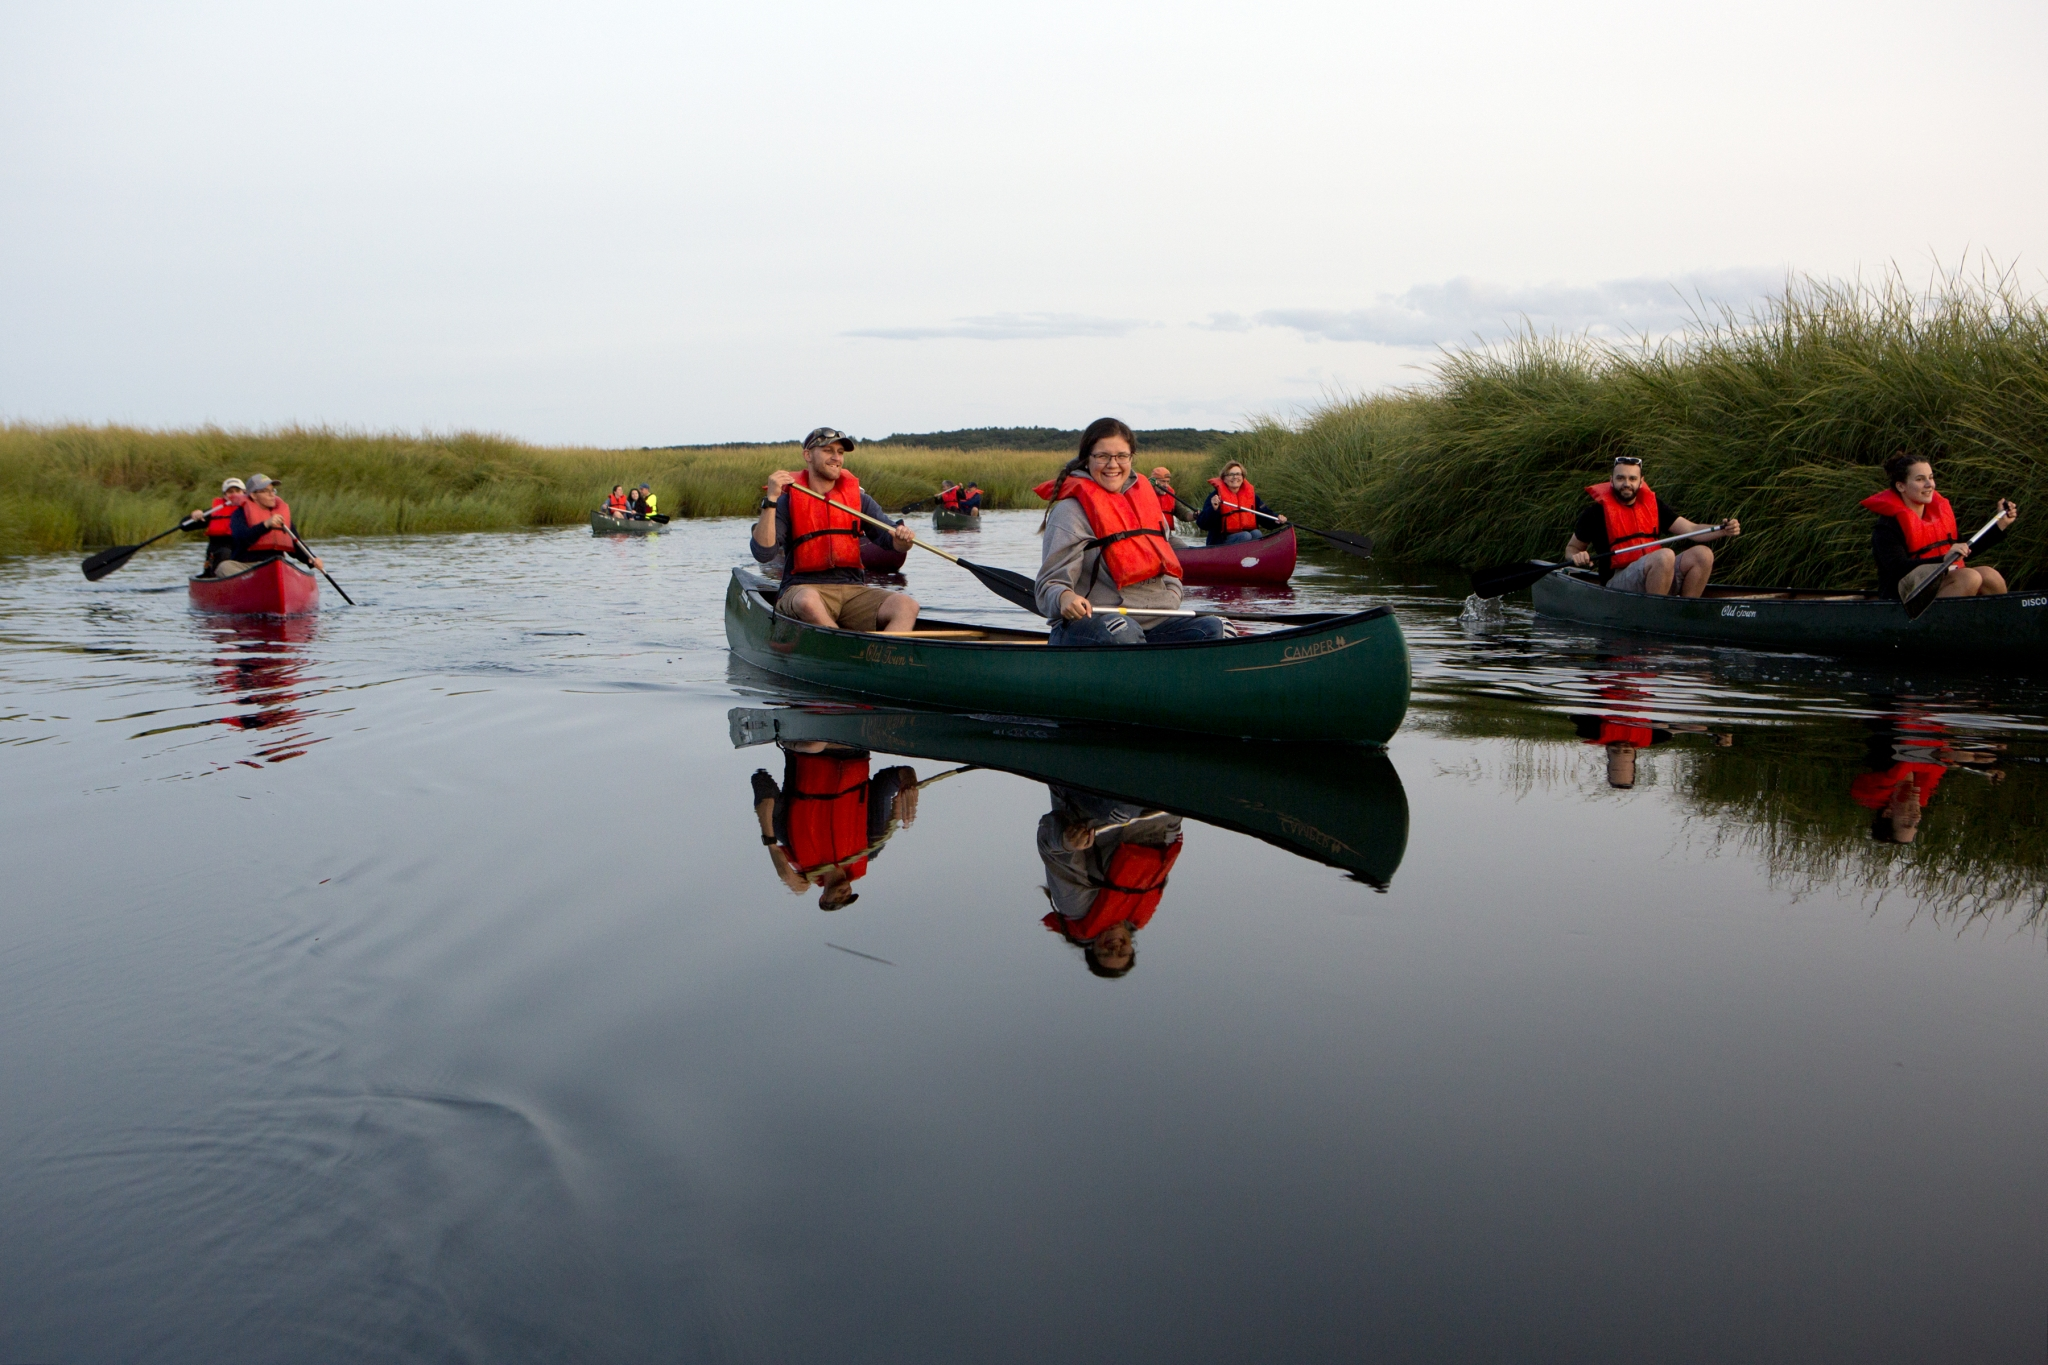 Daily Guided Canoe Tour